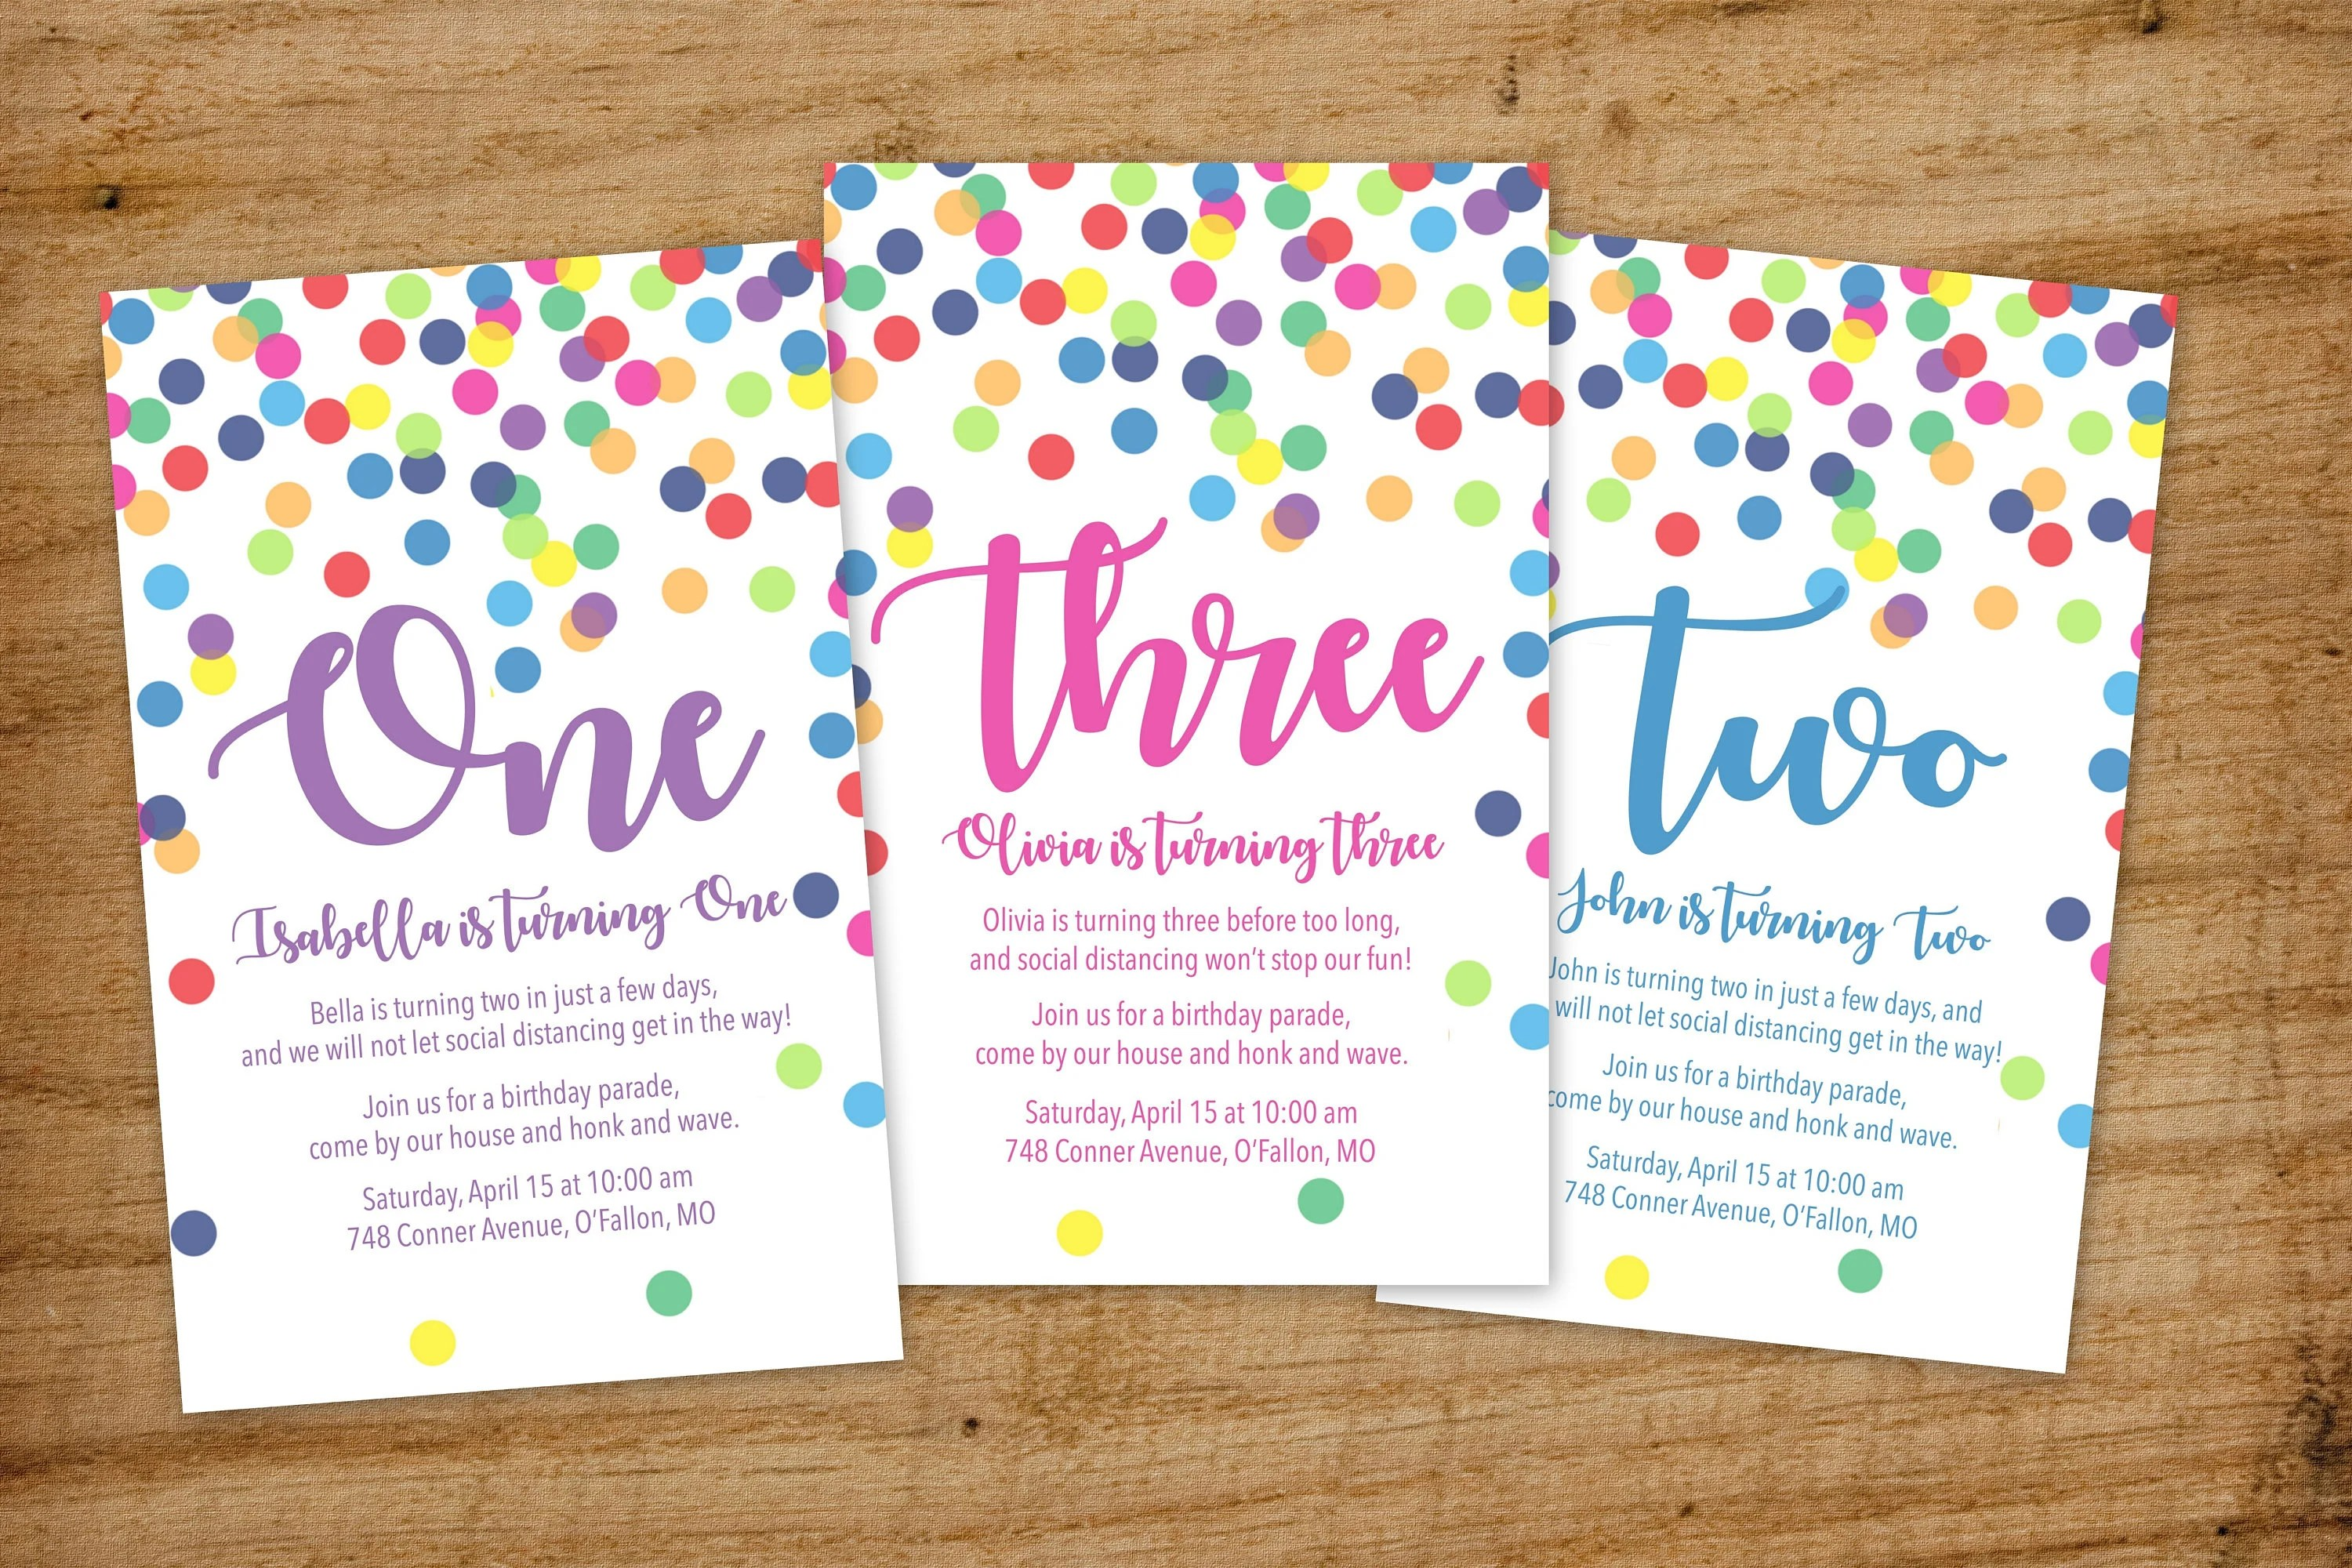 quarantine birthday party invitation drive by social distancing parade confetti 1st 2nd 3rd 4th 5th 6th 7th birthday invite